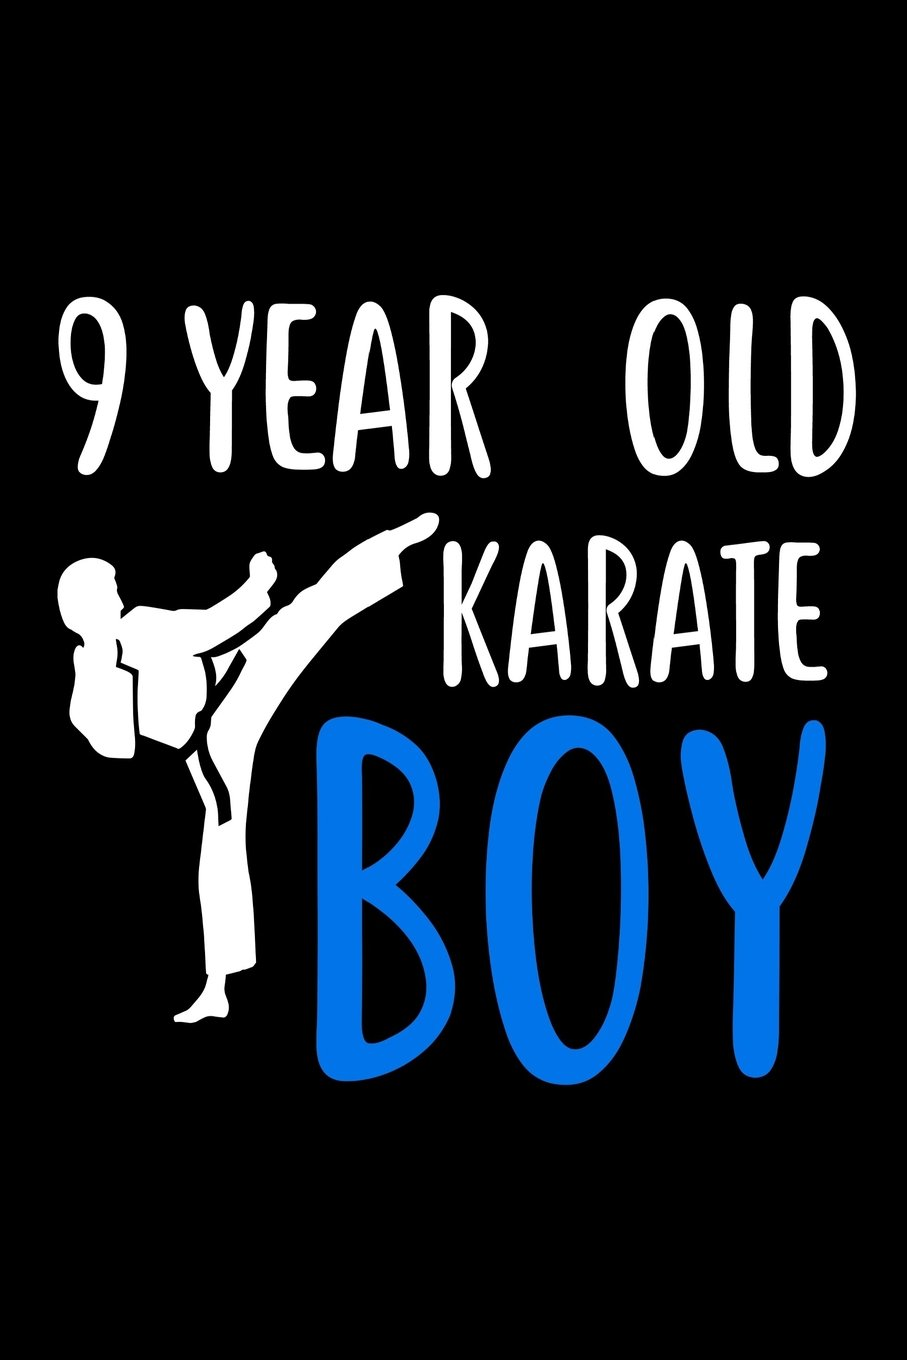 9 Year Old Karate Boy: Martial Arts 9th Birthday Gift Notebook for Boys PDF